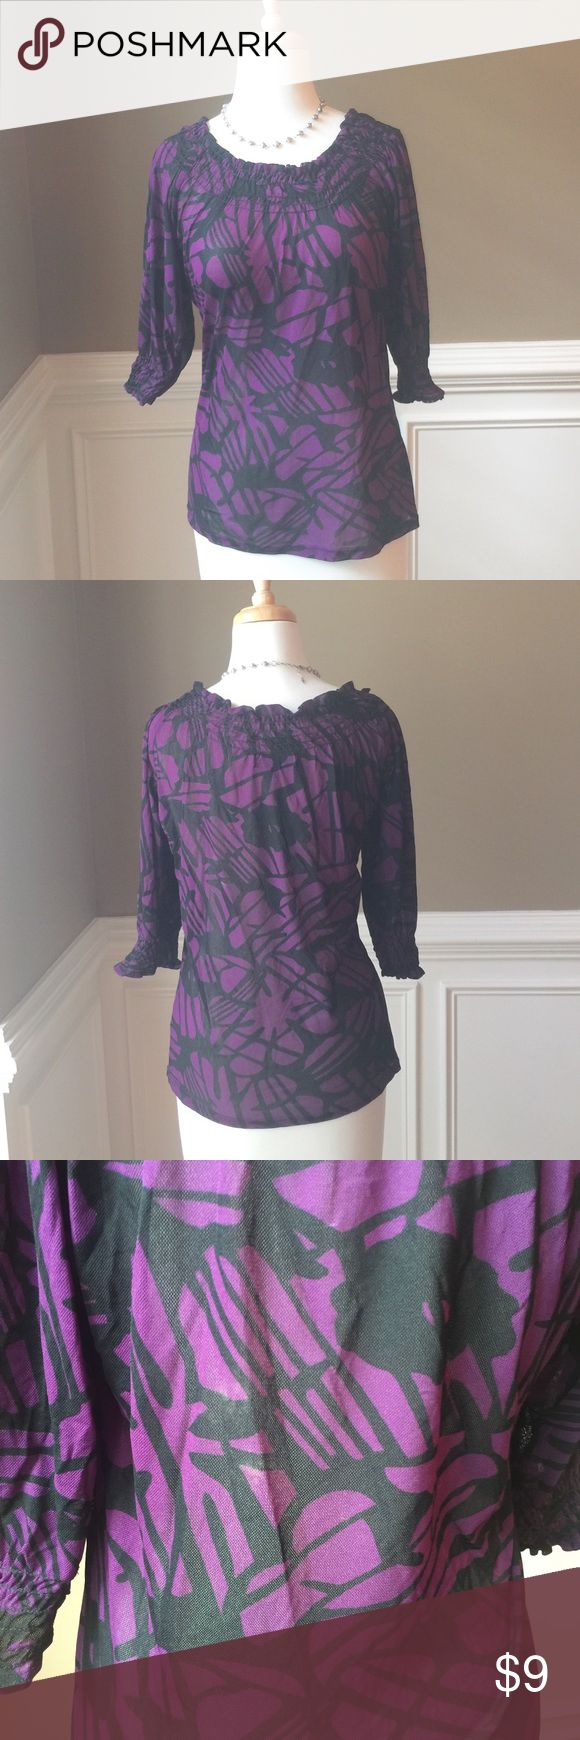 """Karen Kane sheer purple top Pretty semi-sheer top from Karen Kane. Vibrant purple with black floral pattern. Smocked neck and sleeve cuffs. You can wear it off-shoulder as well. Possible slight variation in color, I'm not sure if that's how it came. See pic 3. Otherwise no flaws or blemishes. No rips or odors. Smoke and pet free home. Approx 15"""" across bust, 22.5"""" long, 12"""" sleeves. I cut out large white fabric tag b/c it was so easily visible through fabric. Karen Kane Tops Tees - Long…"""